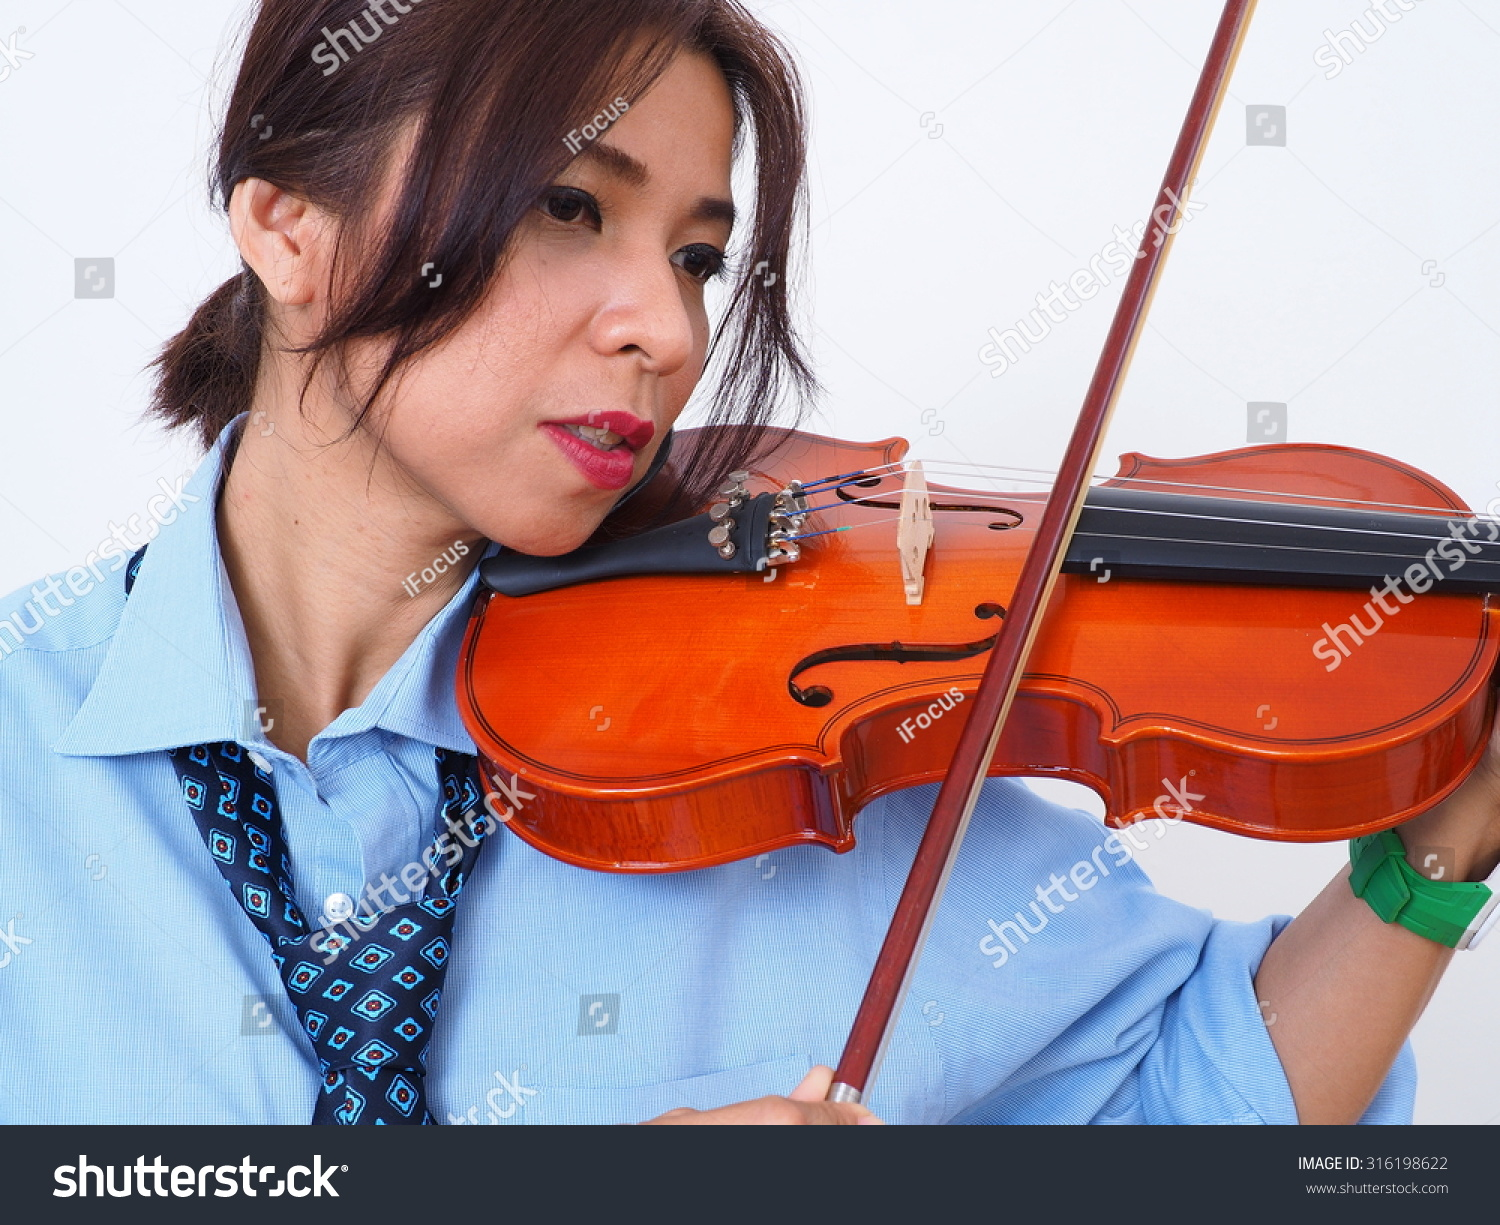 Modern Asian woman with undone tie plays violin